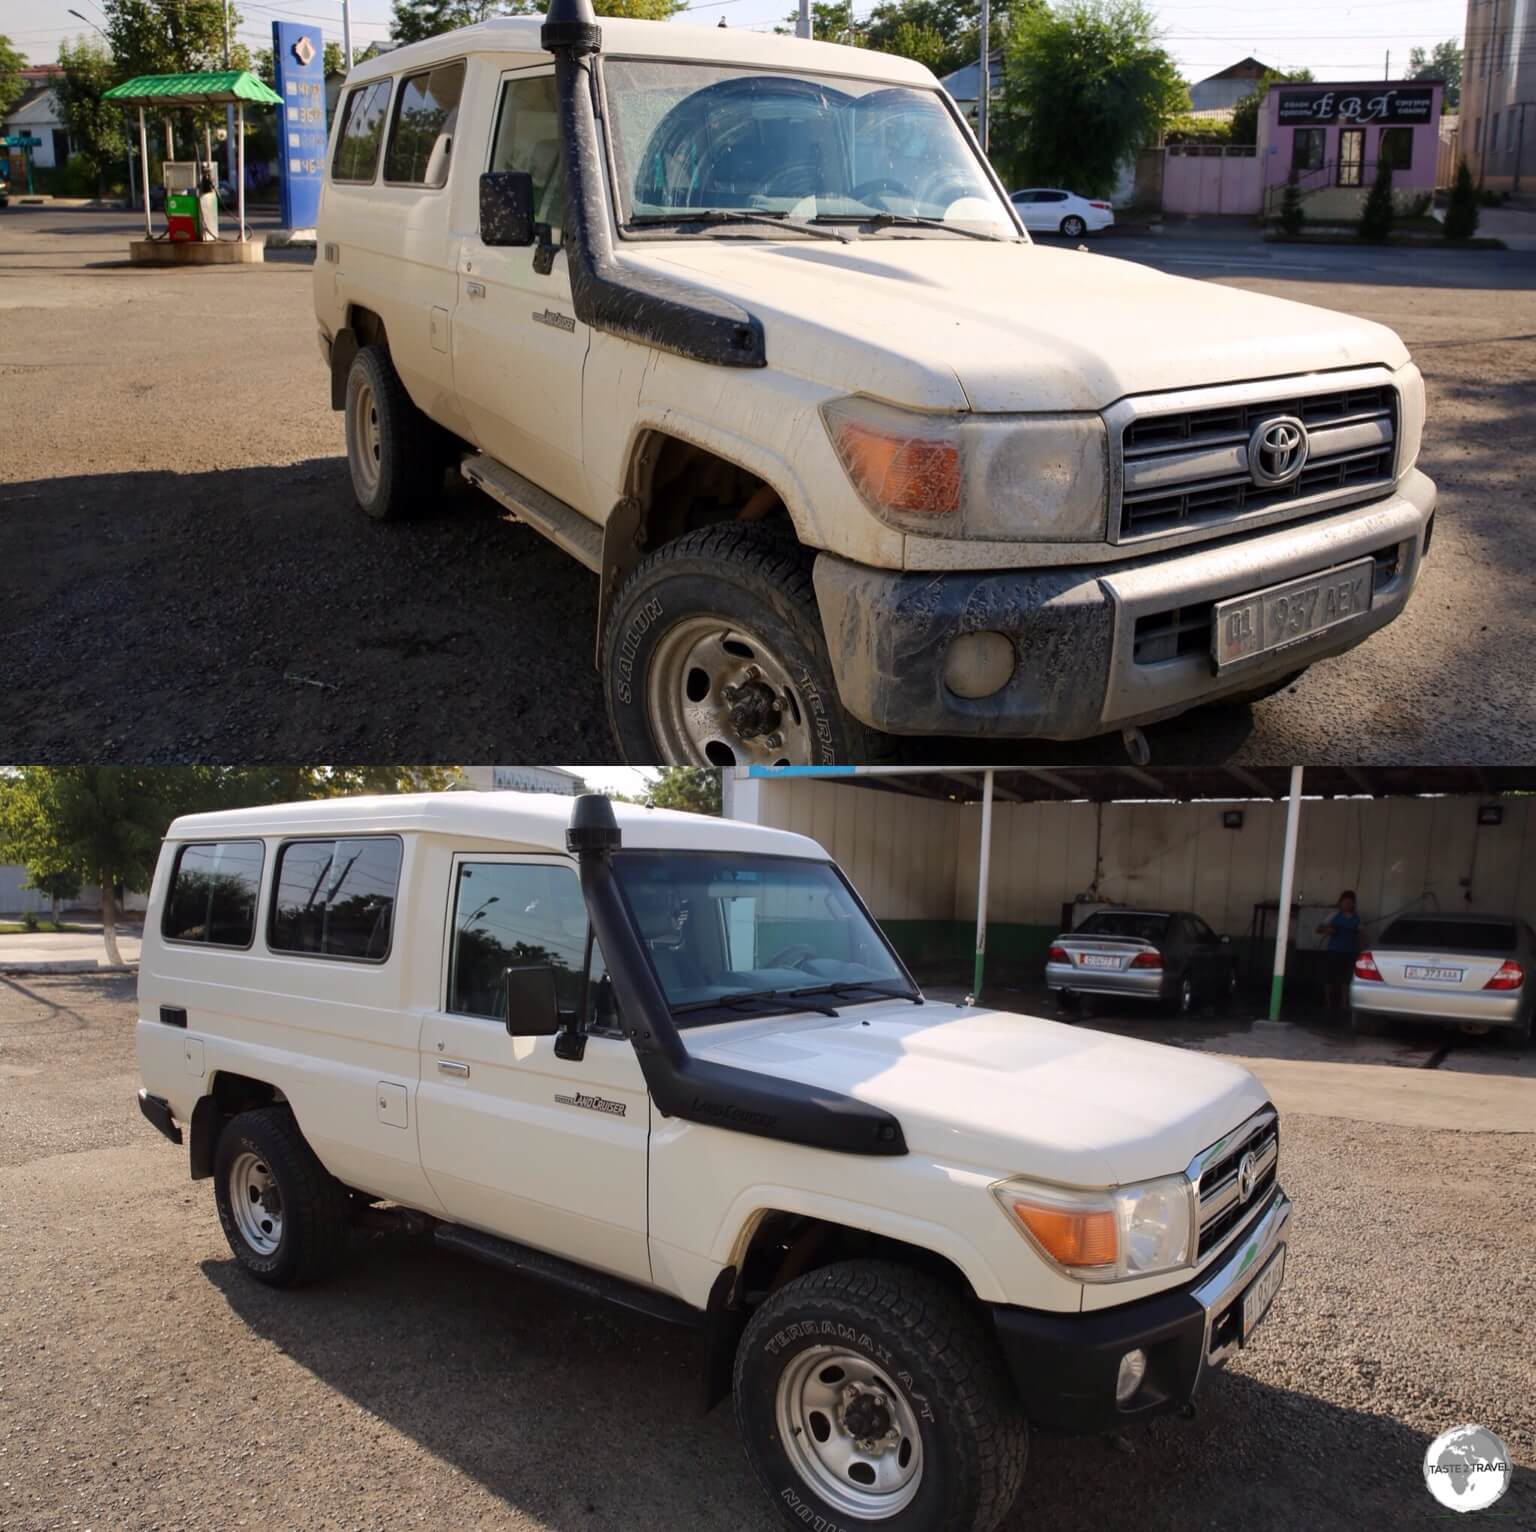 A much needed car wash in Osh! Before and after photos of my amazing, go-anywhere, Toyota Land Cruiser, perfect for the rough Kyrgyzstan roads.